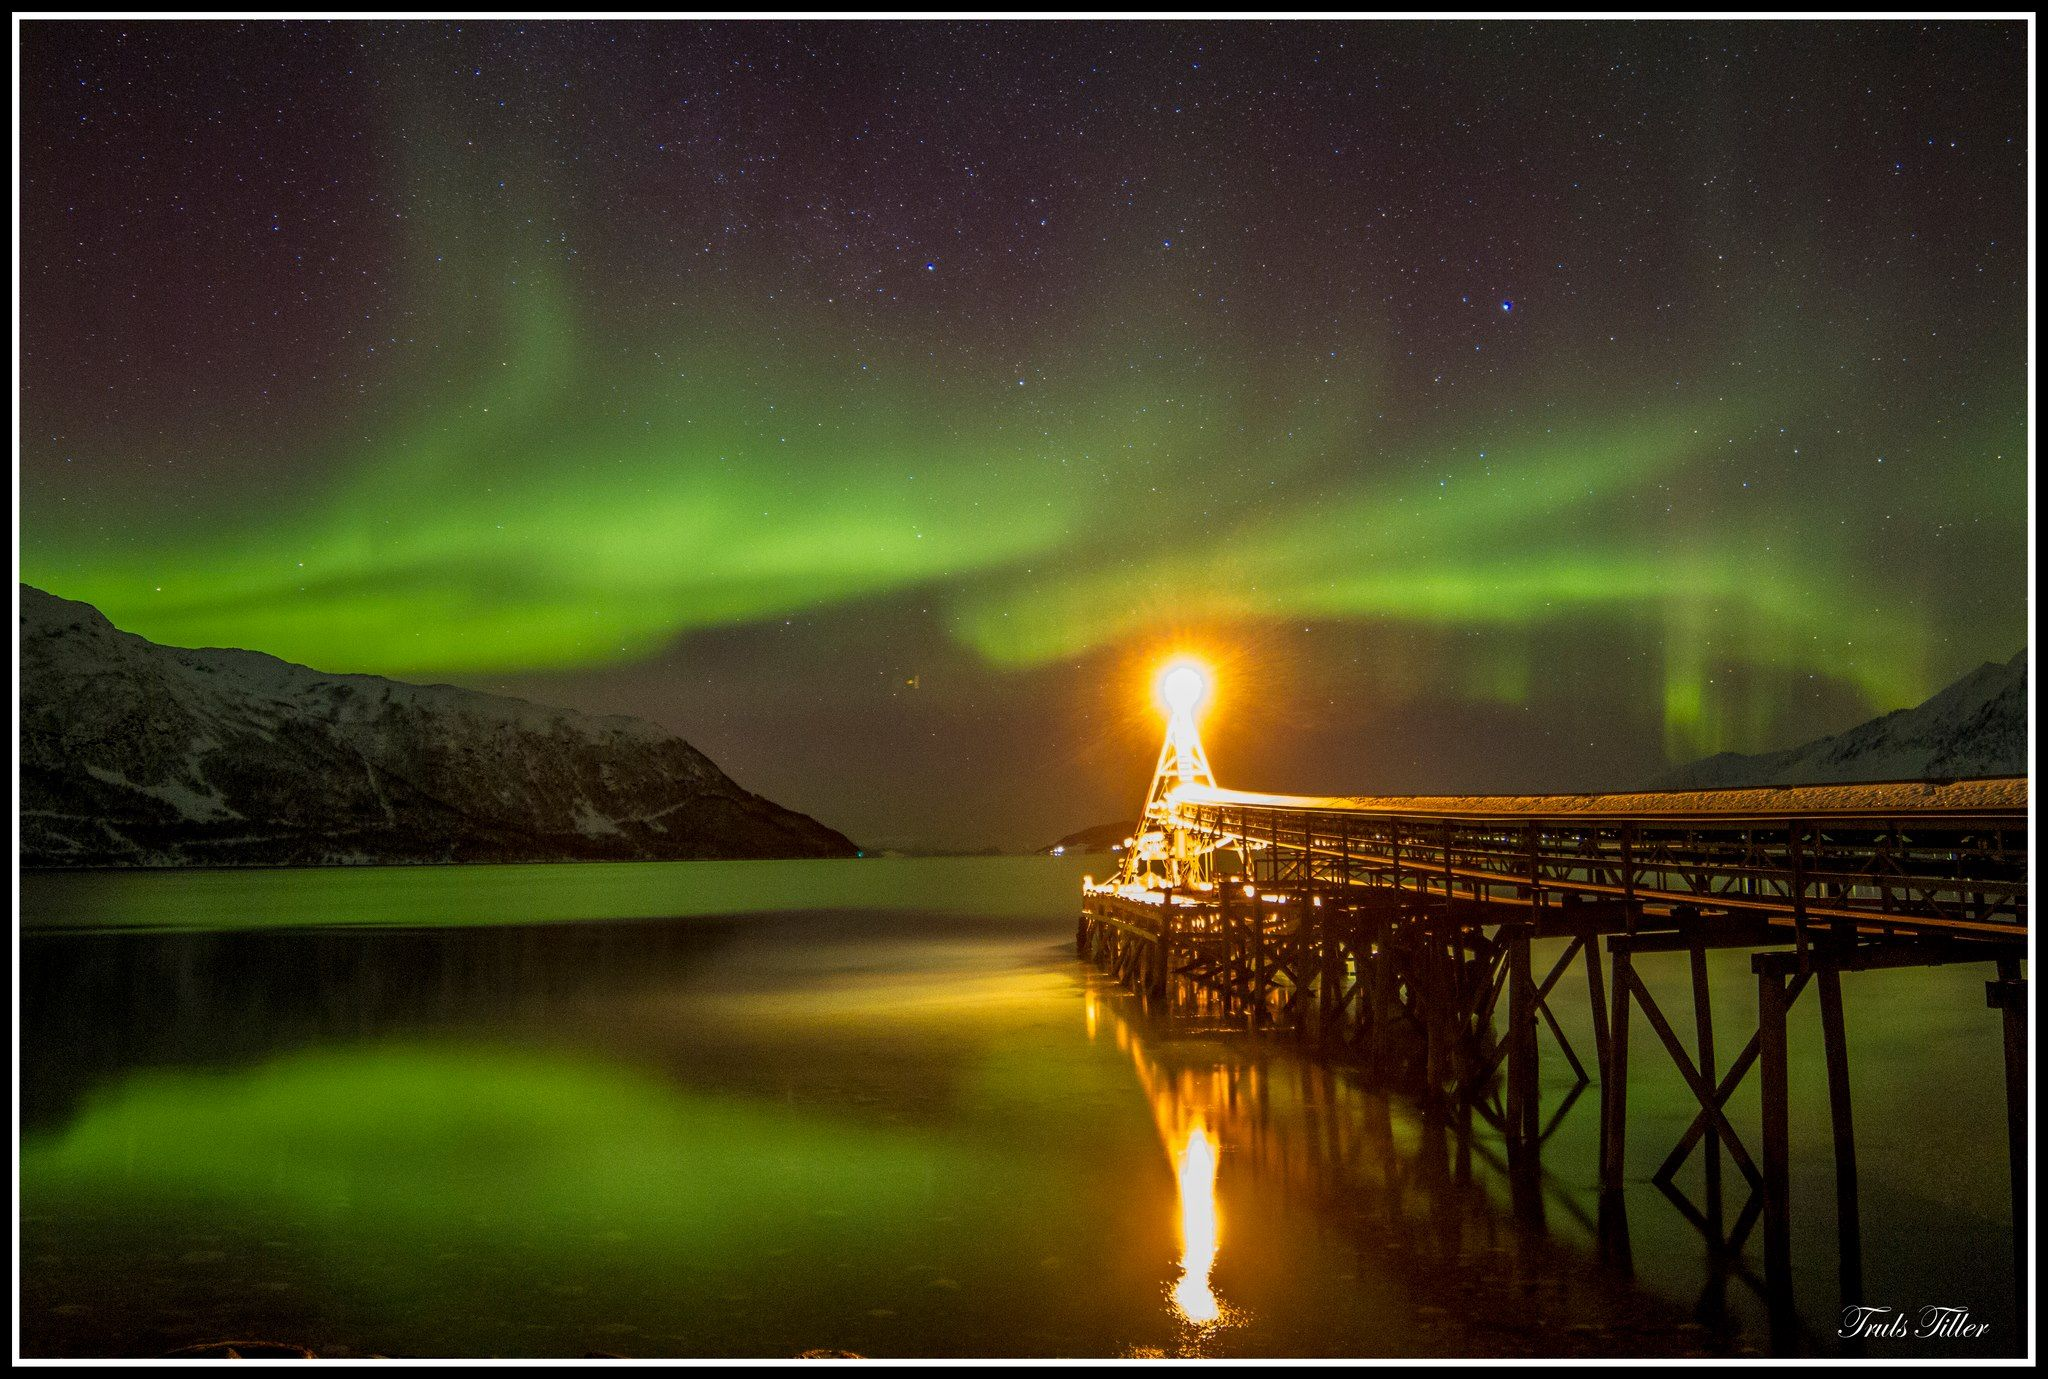 Aurora over Ullsfjorden, outside Tromsø, Norway